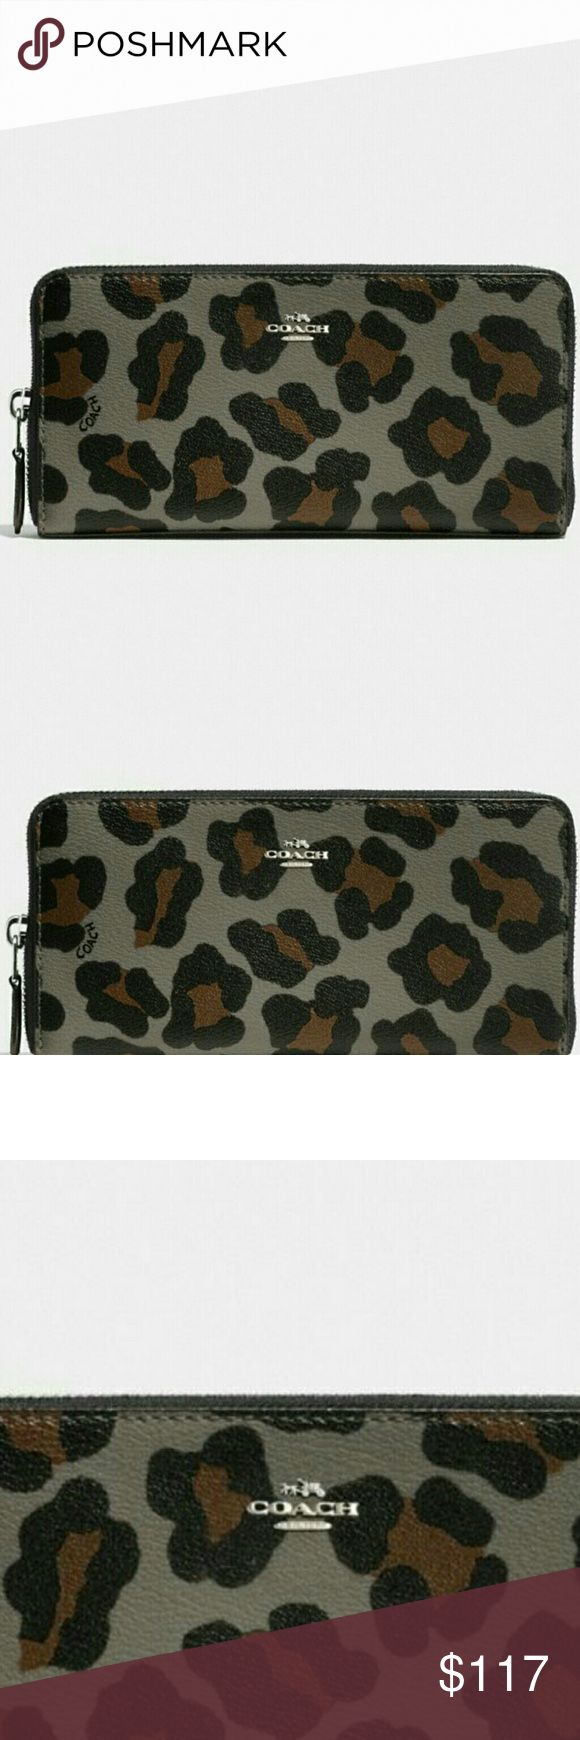 """💖COACH Accordion Zip Wallet 💖💜 Authentic Accordion Zip Wallet.💜  Ocelot Print (Grey/Black/Tan).  The interior is leather and black sateen fabric and contains 12 card slots, a zippered coin compartment and multiple bill slots.   It measures approximately 7.75"""" (L) x 4"""" (H) x 1"""" (W).   💜☆ Brand New. With tags.  Never Used. ☆💜  Bundle with other items for additional 10% Discount. 💖   💖 PERFECT GIFT FOR VALENTINE'S DAY!! 💖 Coach Bags Wallets"""